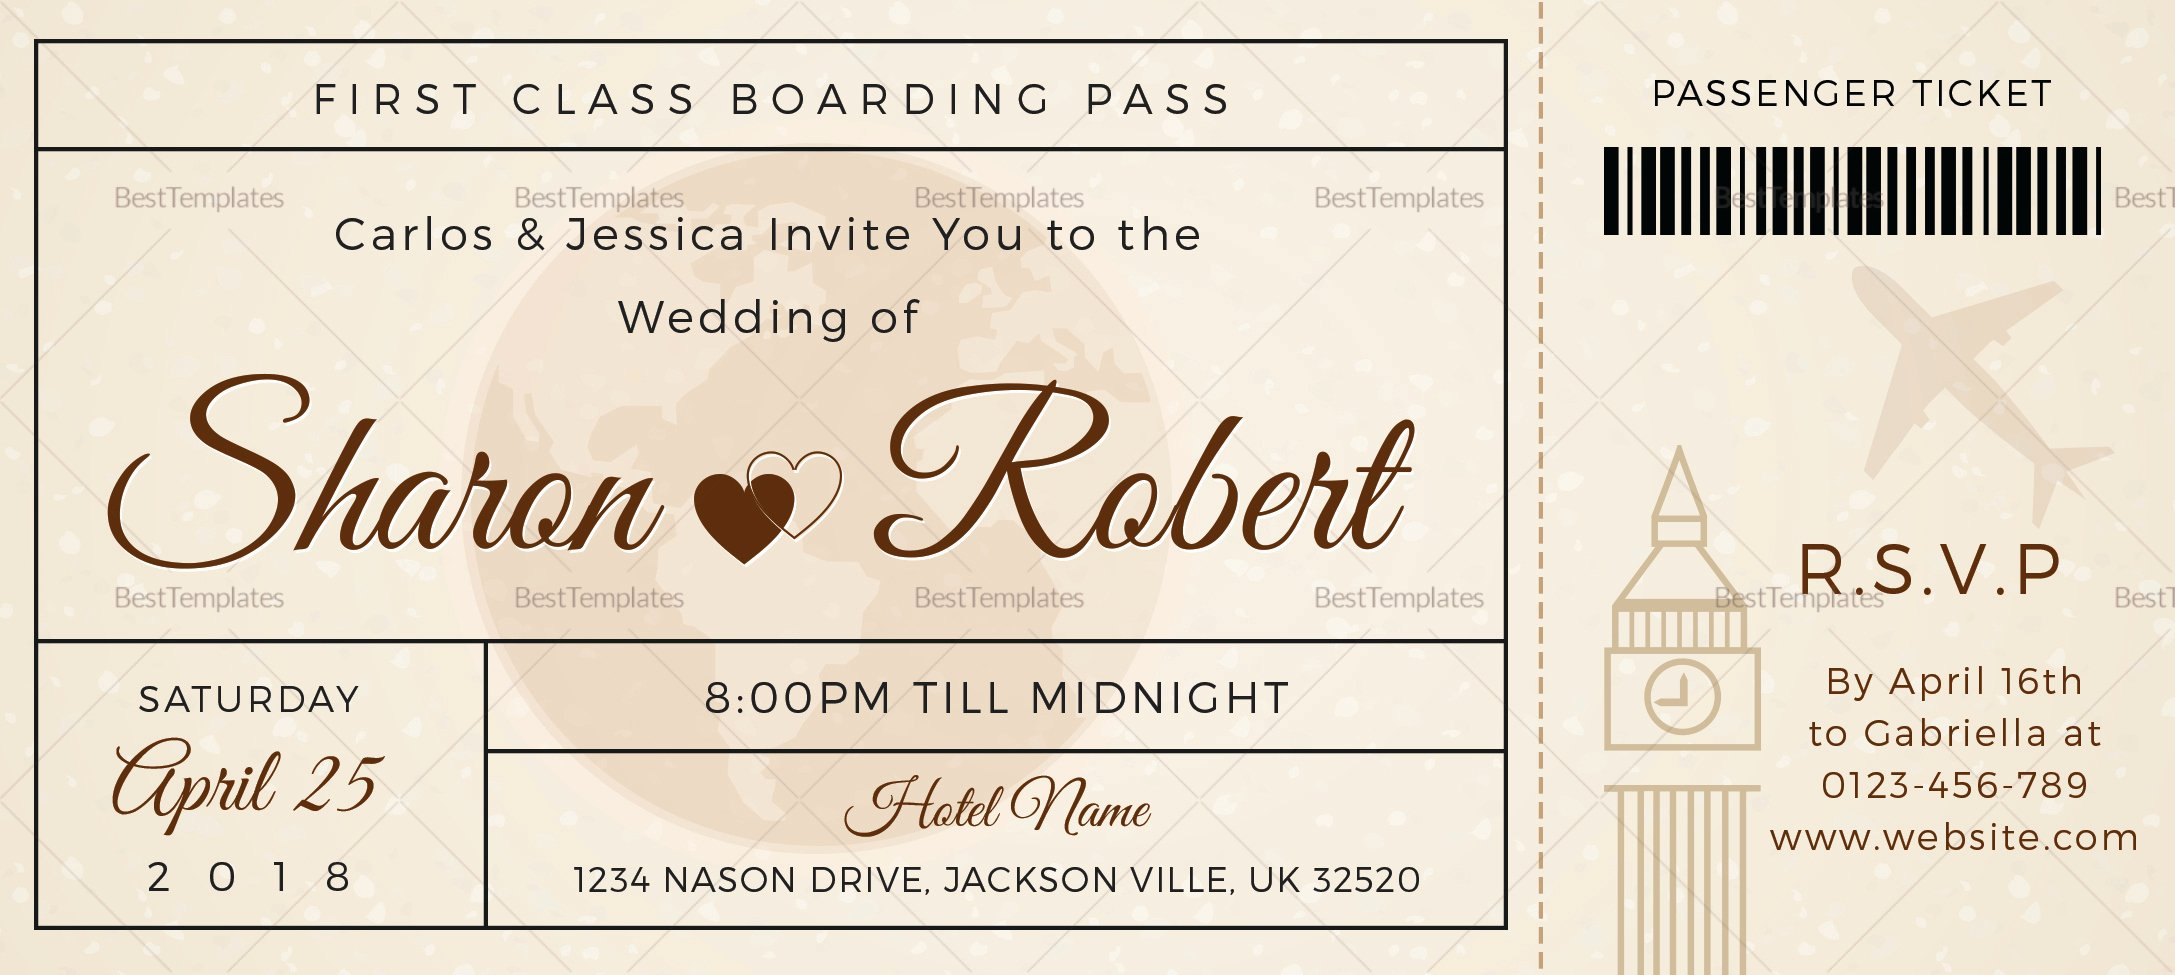 Boarding Pass Template Photoshop Awesome Wedding Boarding Pass Invitation Ticket Design Template In